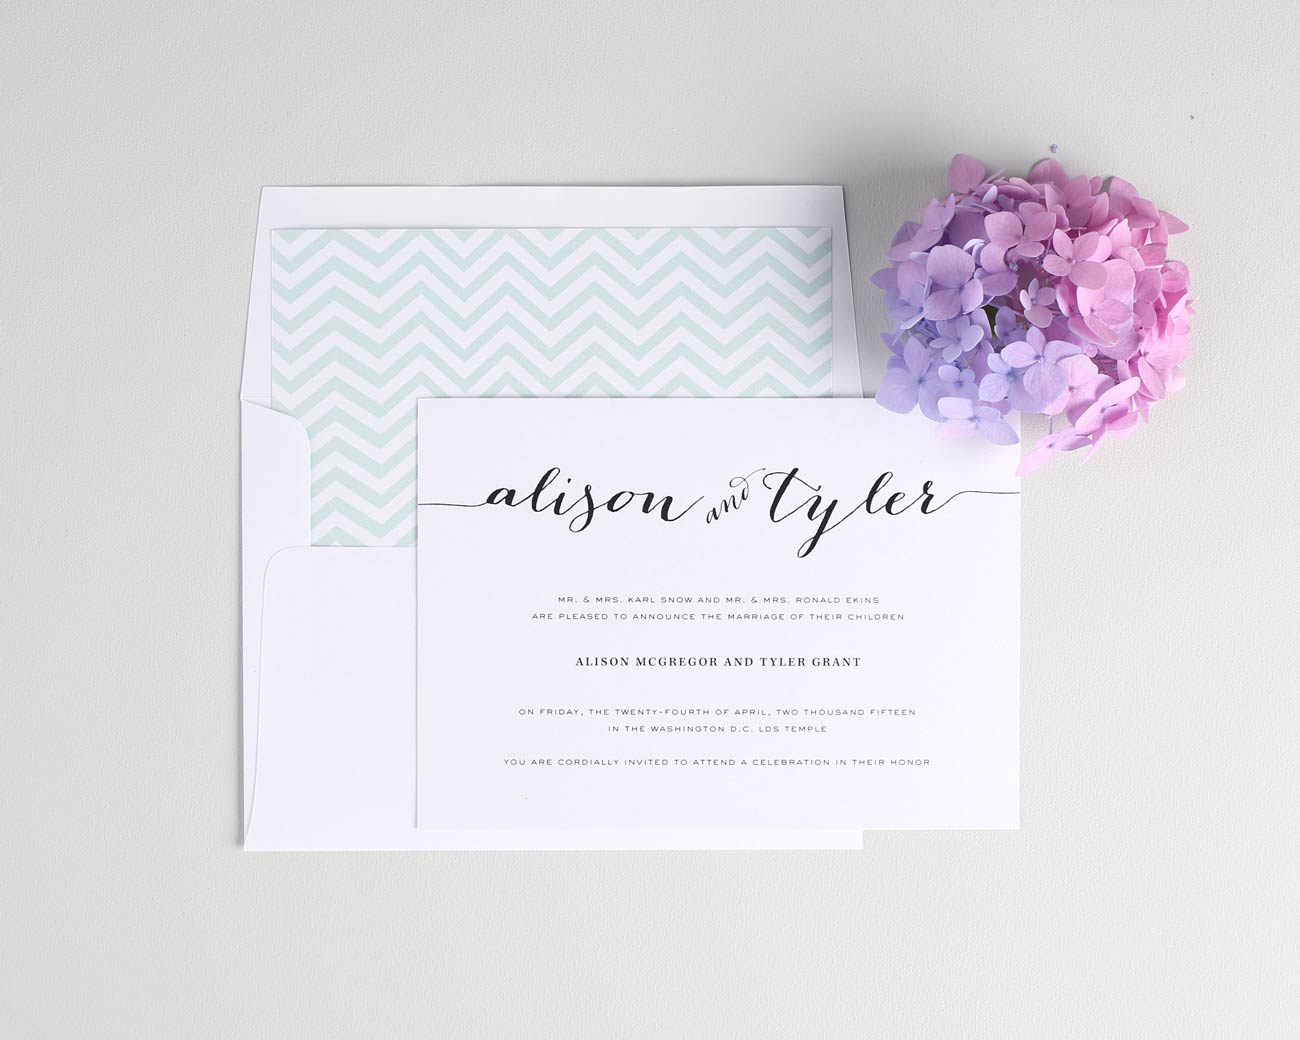 Flowing Script Wedding Invitations with jade chevron accents